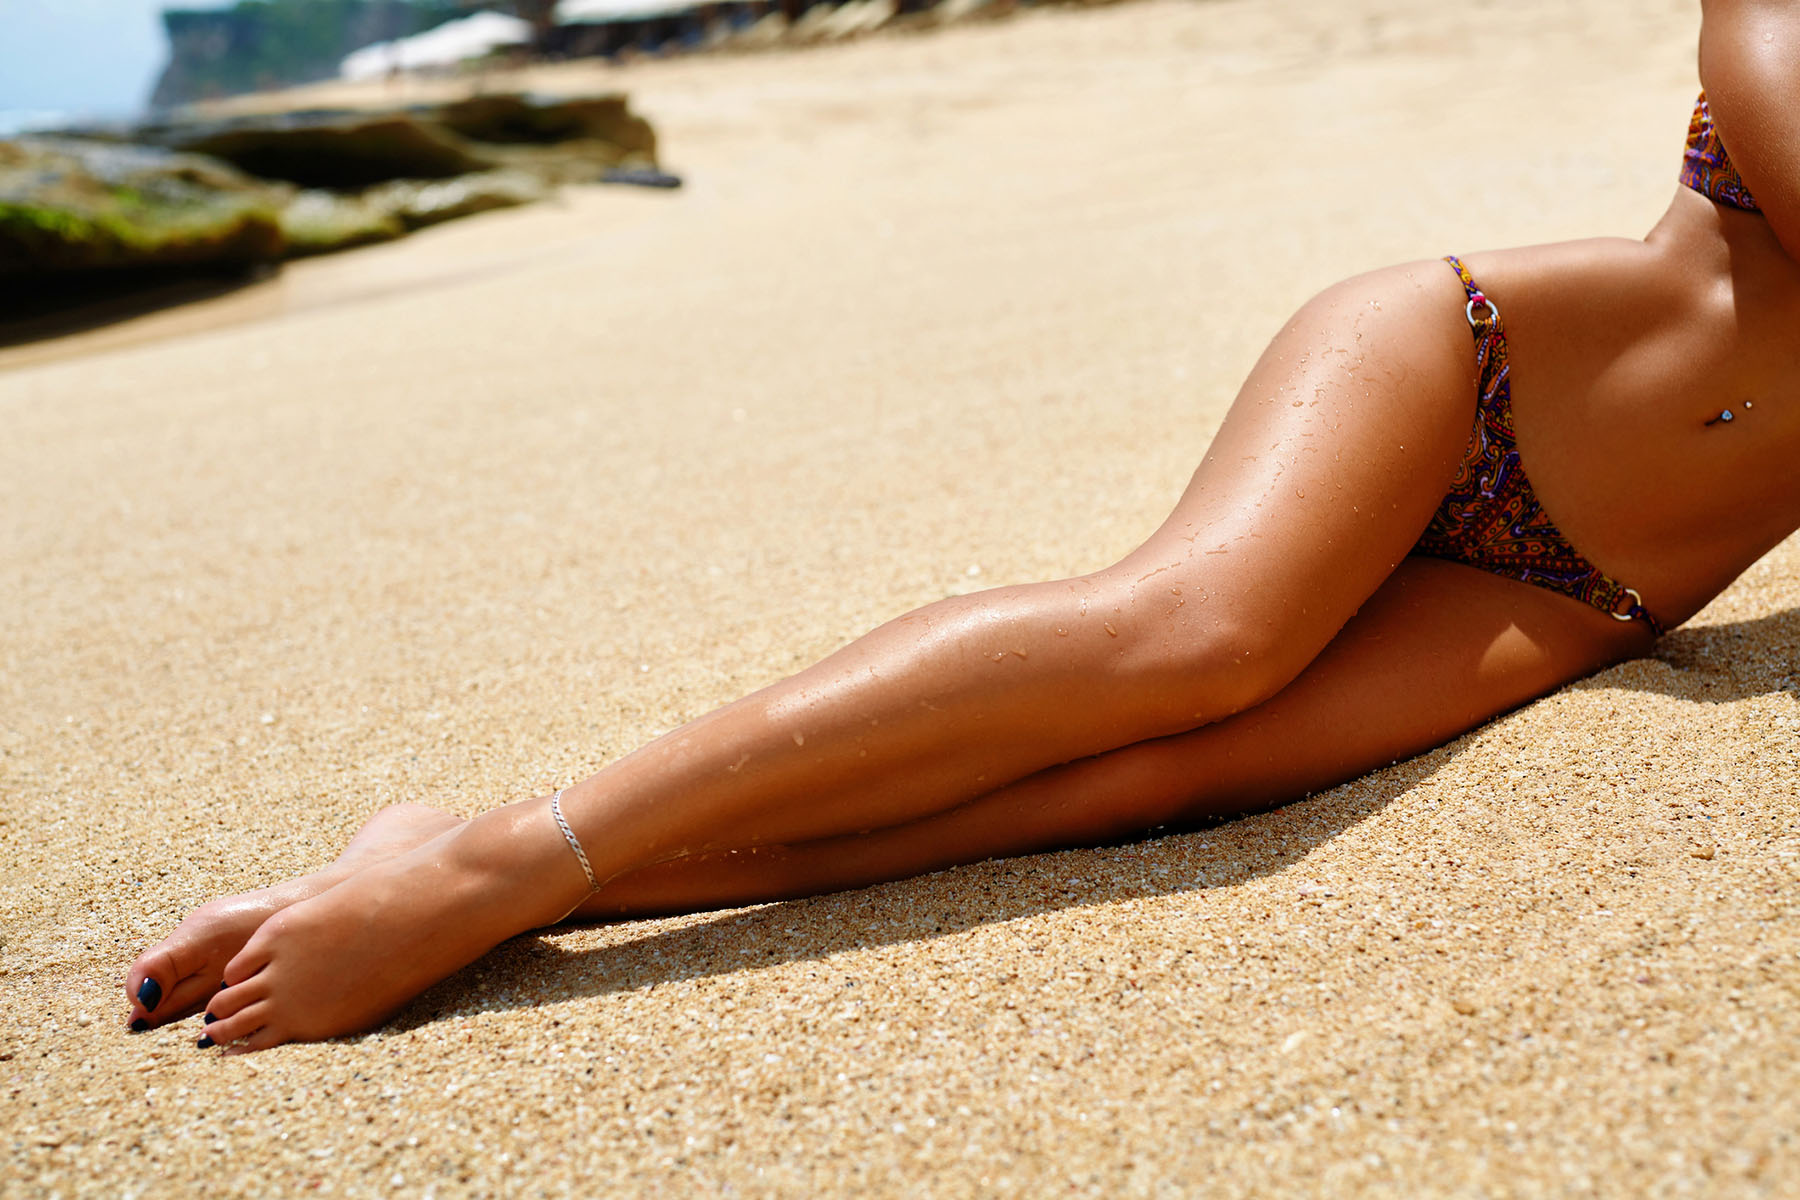 Sexy Long Woman Legs Sunbathing On Beach Sand. Body Part